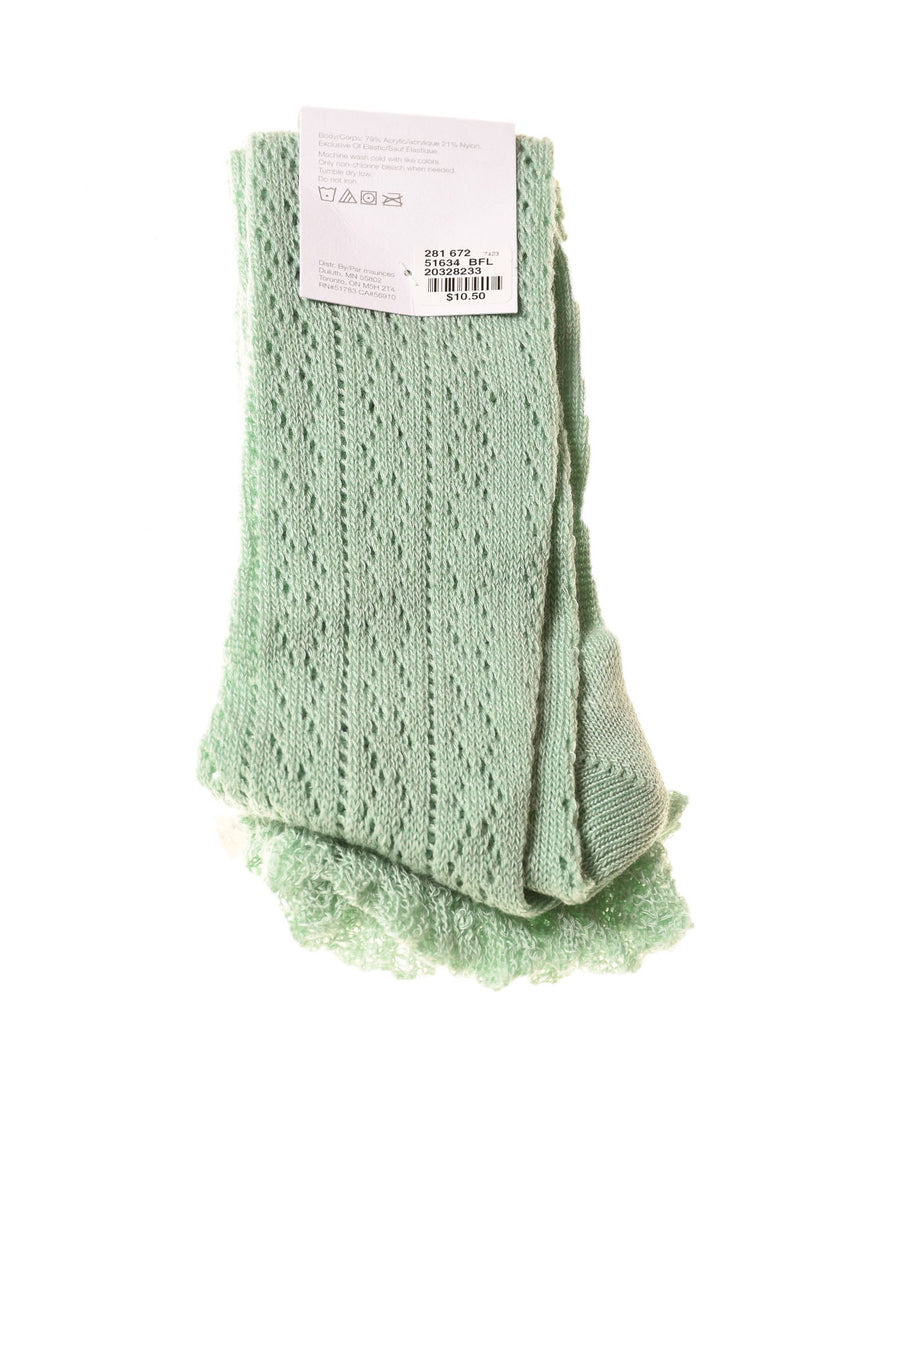 NEW Maurices Women's Socks One Size Mint